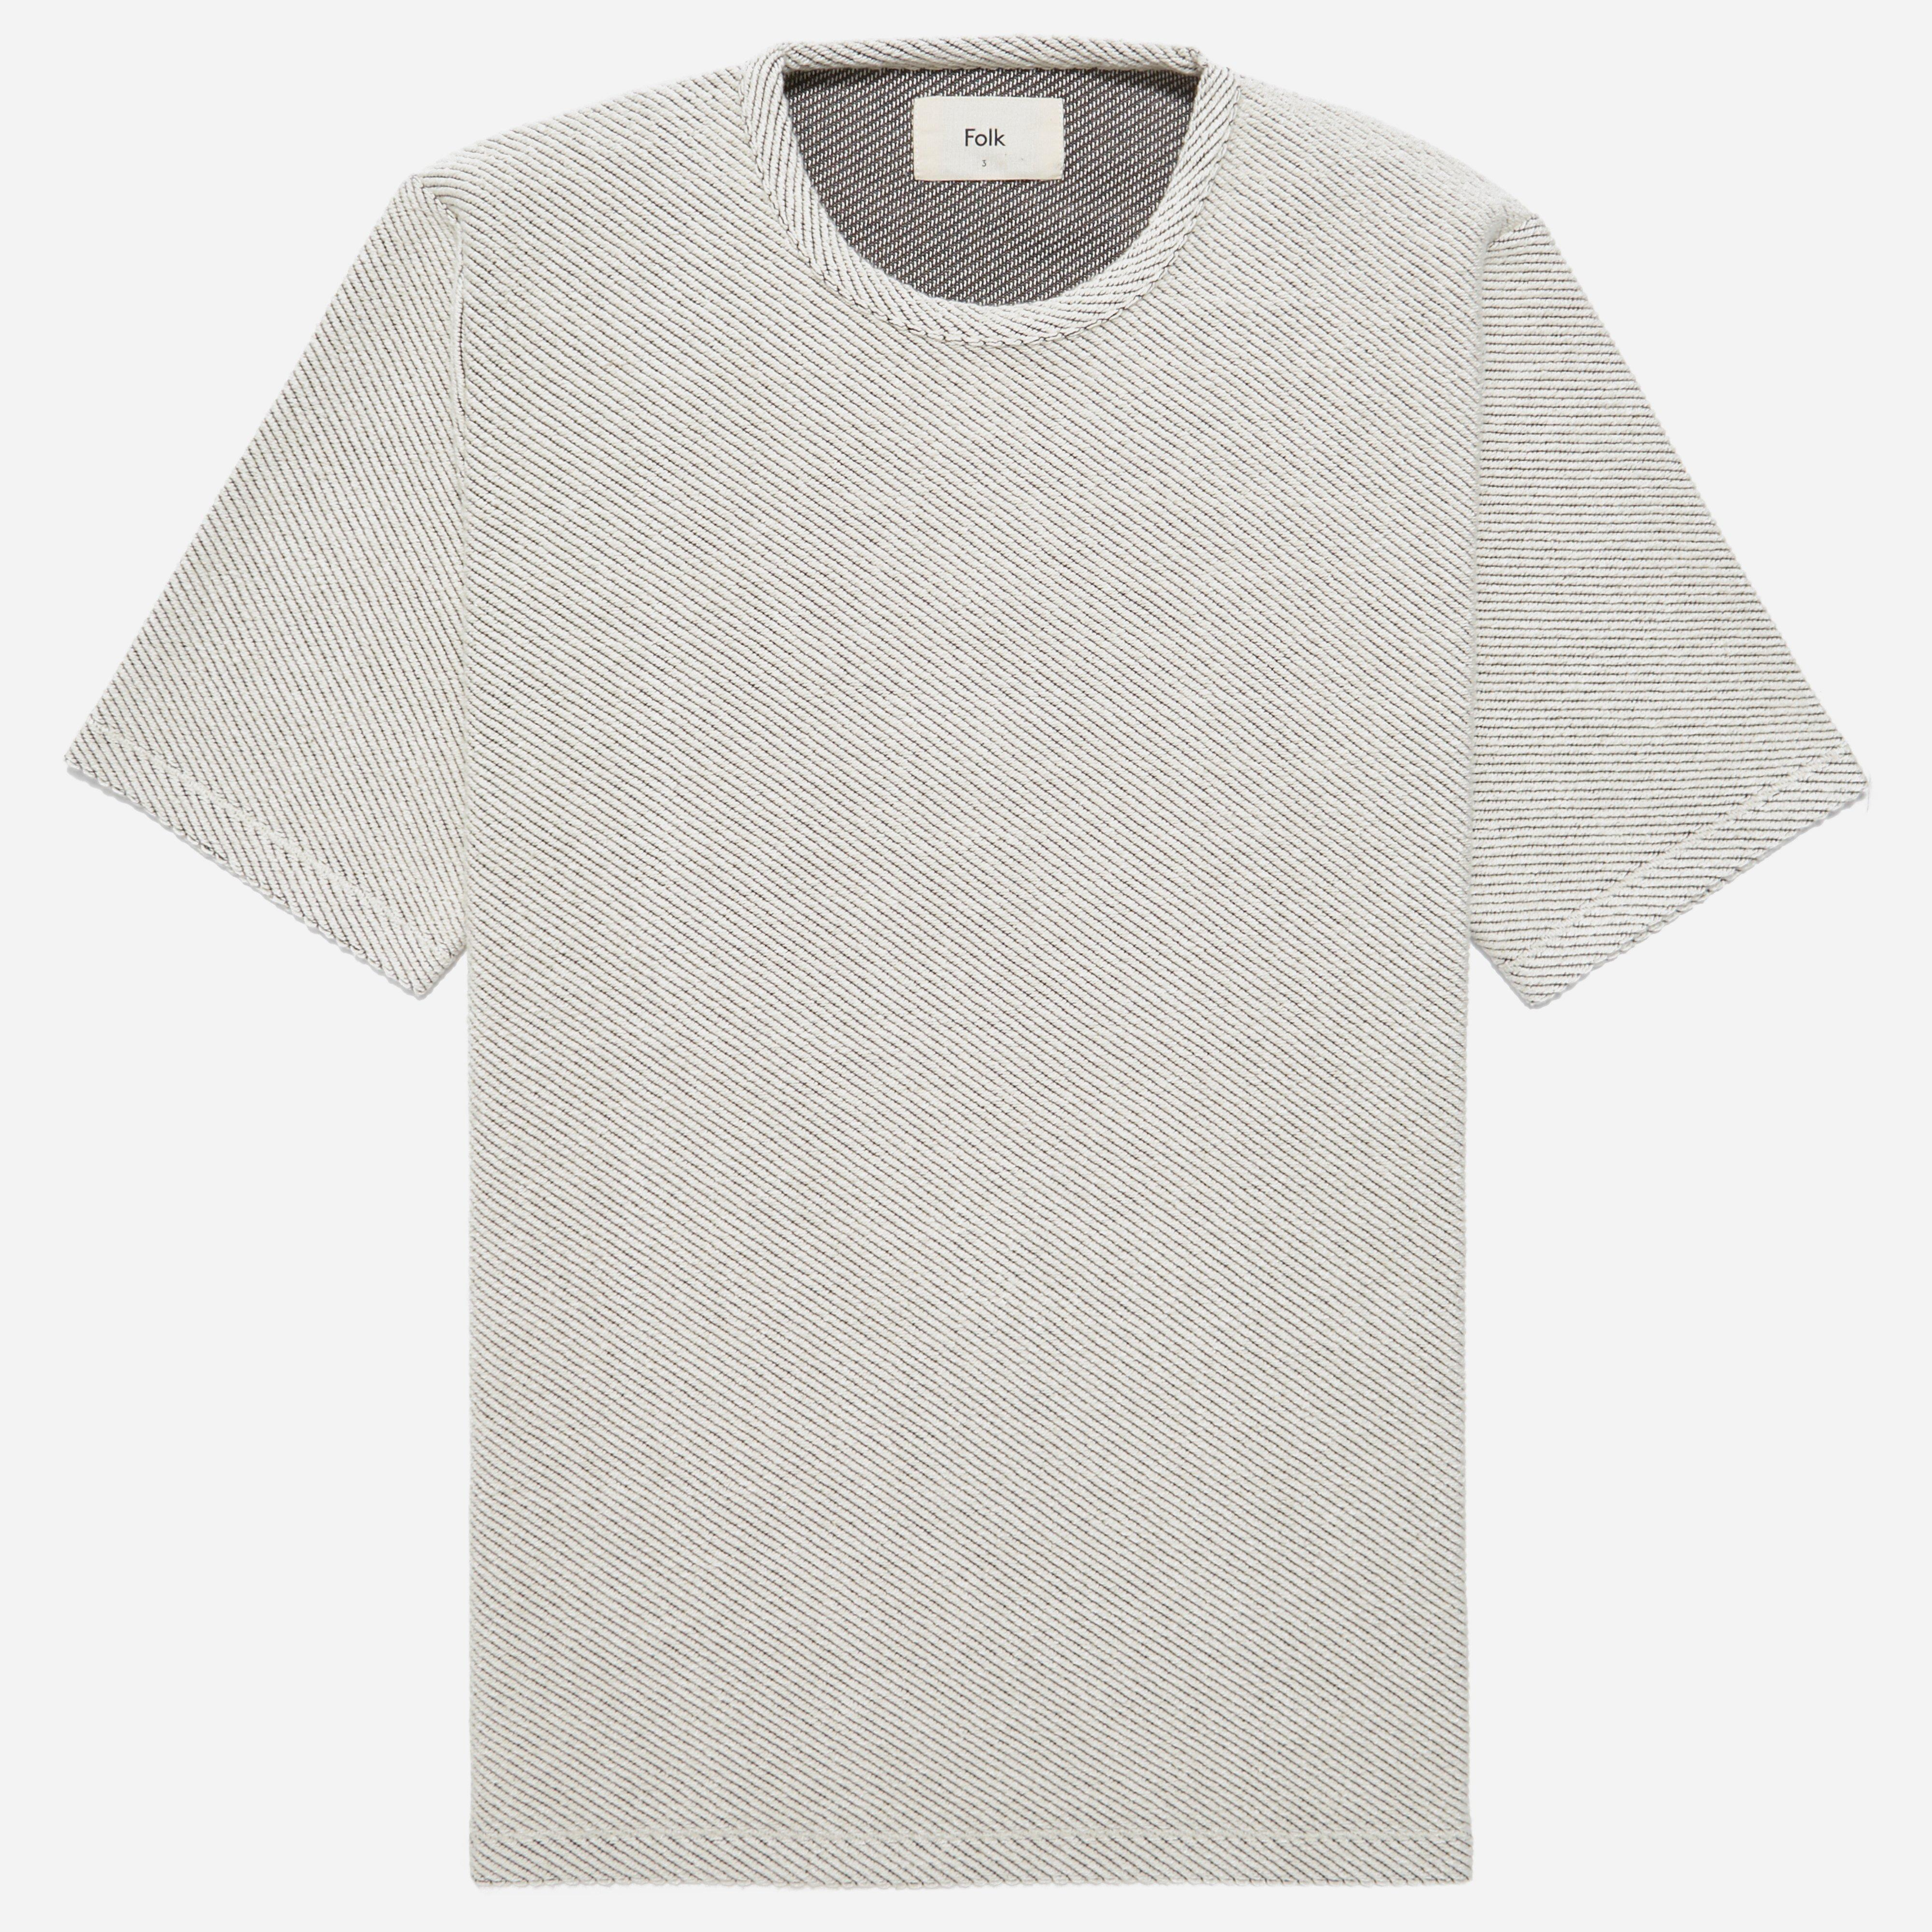 Folk Mid Weight T-shirt